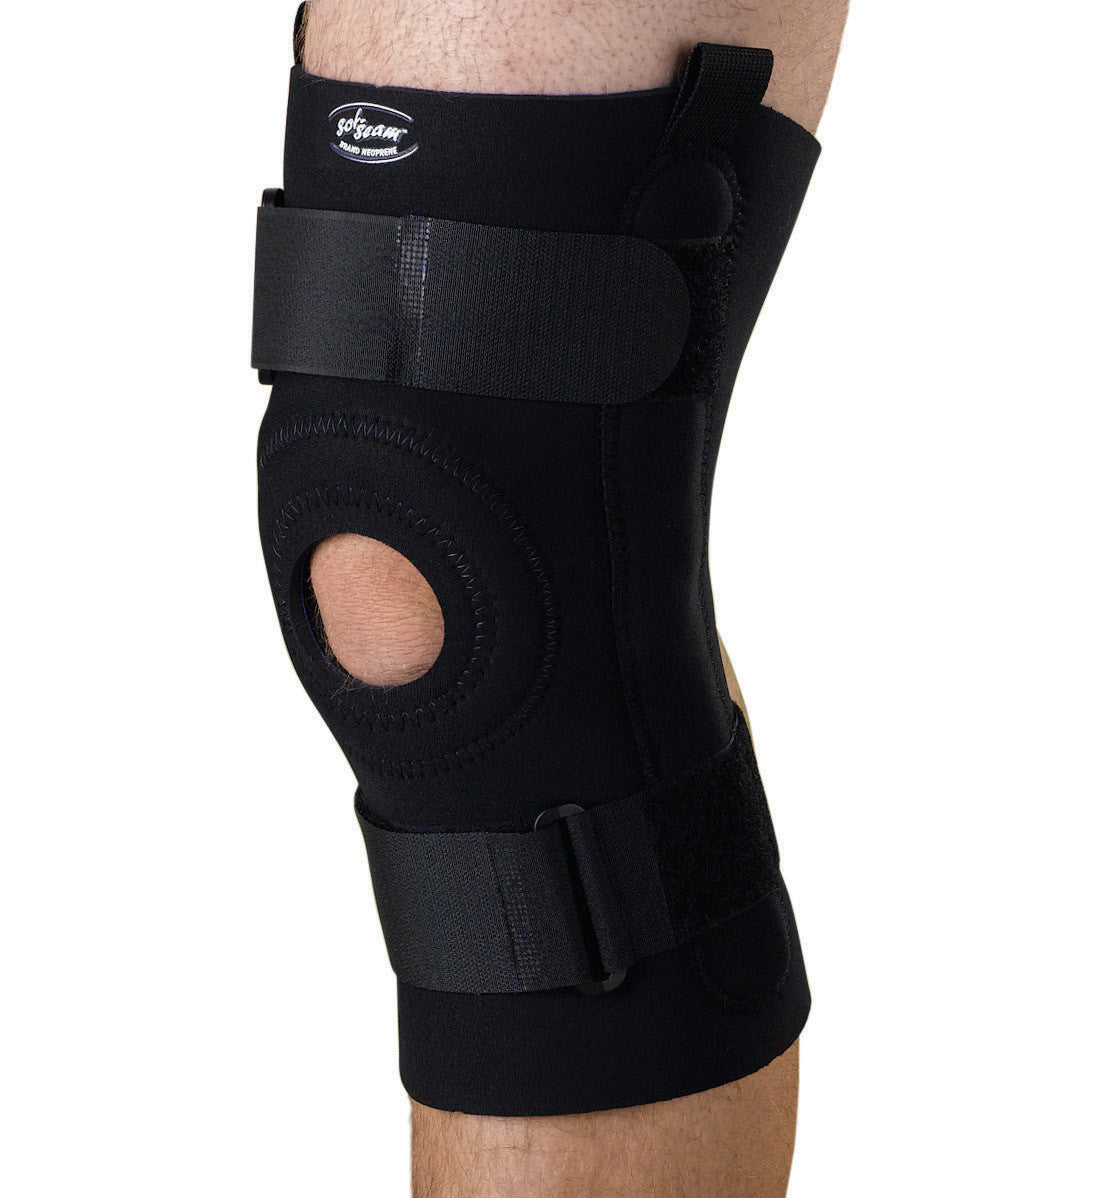 SUPPORT,KNEE,HINGE,2XL,EA